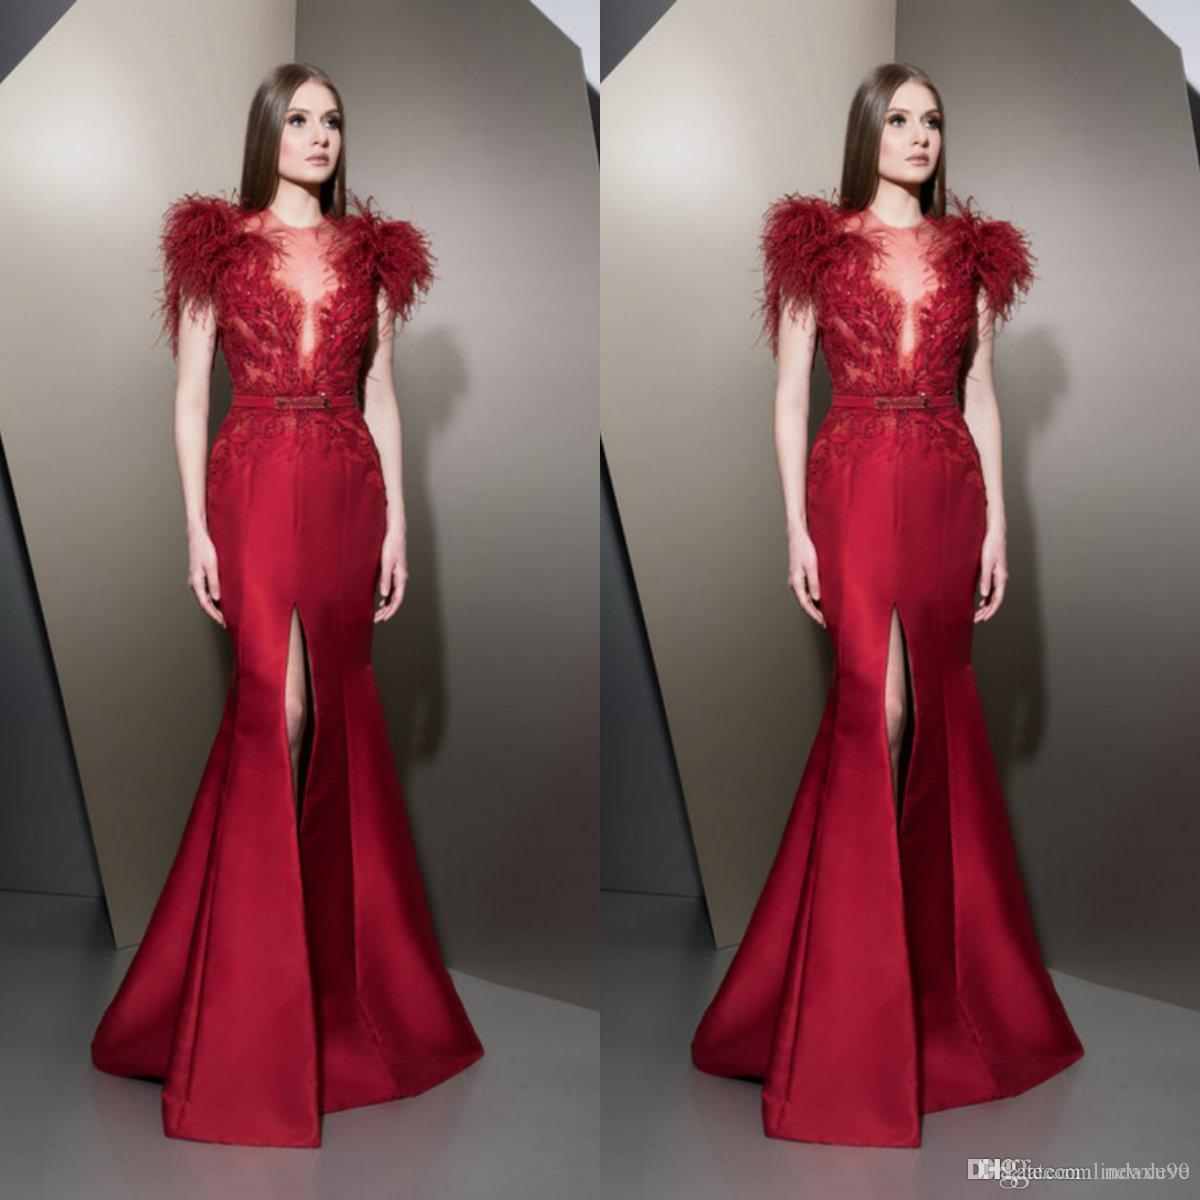 3a34d5a73818 Ziad Nakad 2019 Red Mermaid Evening Dresses Jewel Neck Lace Appliques  Illusion Short Sleeve Front Split Prom Gowns Formal Party Dresses Blue Evening  Dress ...